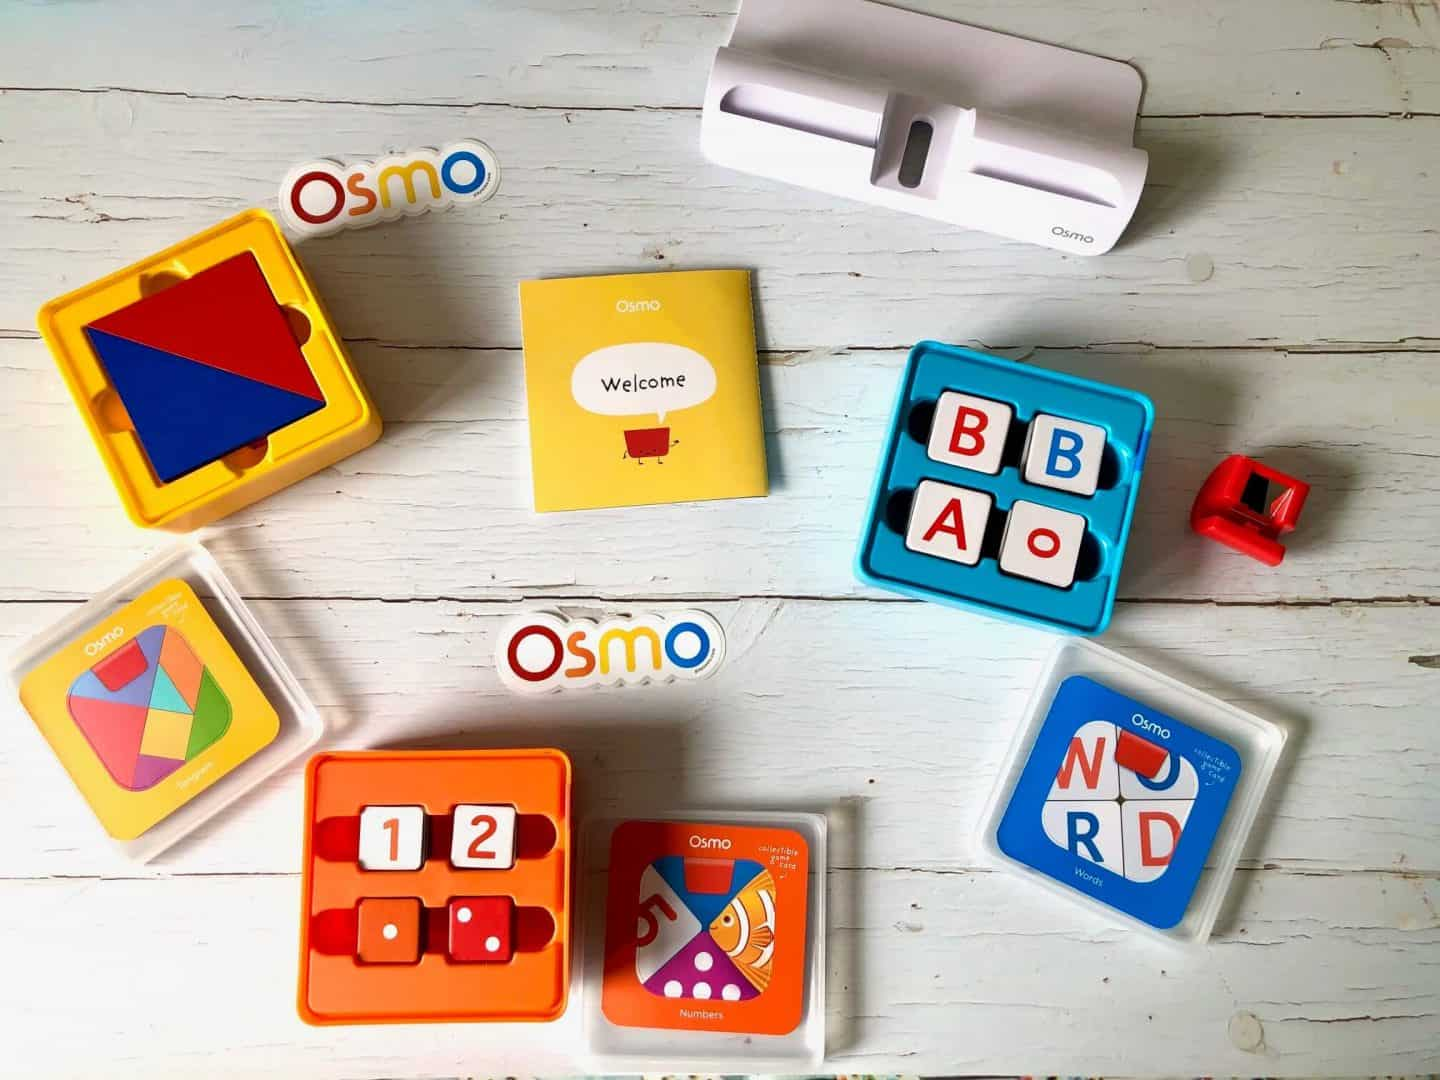 Osmo Genius Starter Kit Review - What's in the box